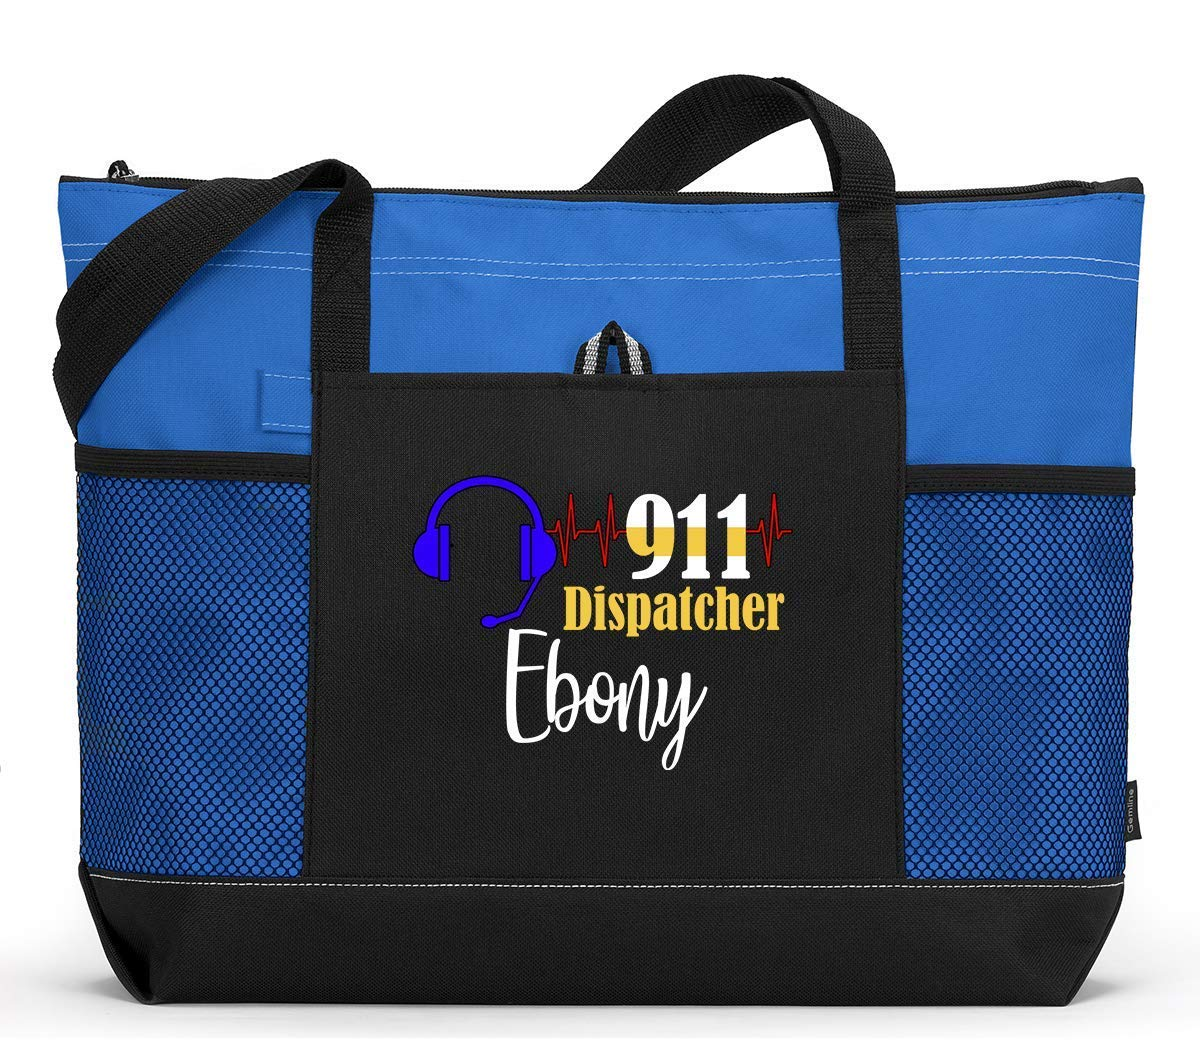 Heartbeat 911 Dispatcher Tote Personalized Bag Free Shipping New Max 66% OFF